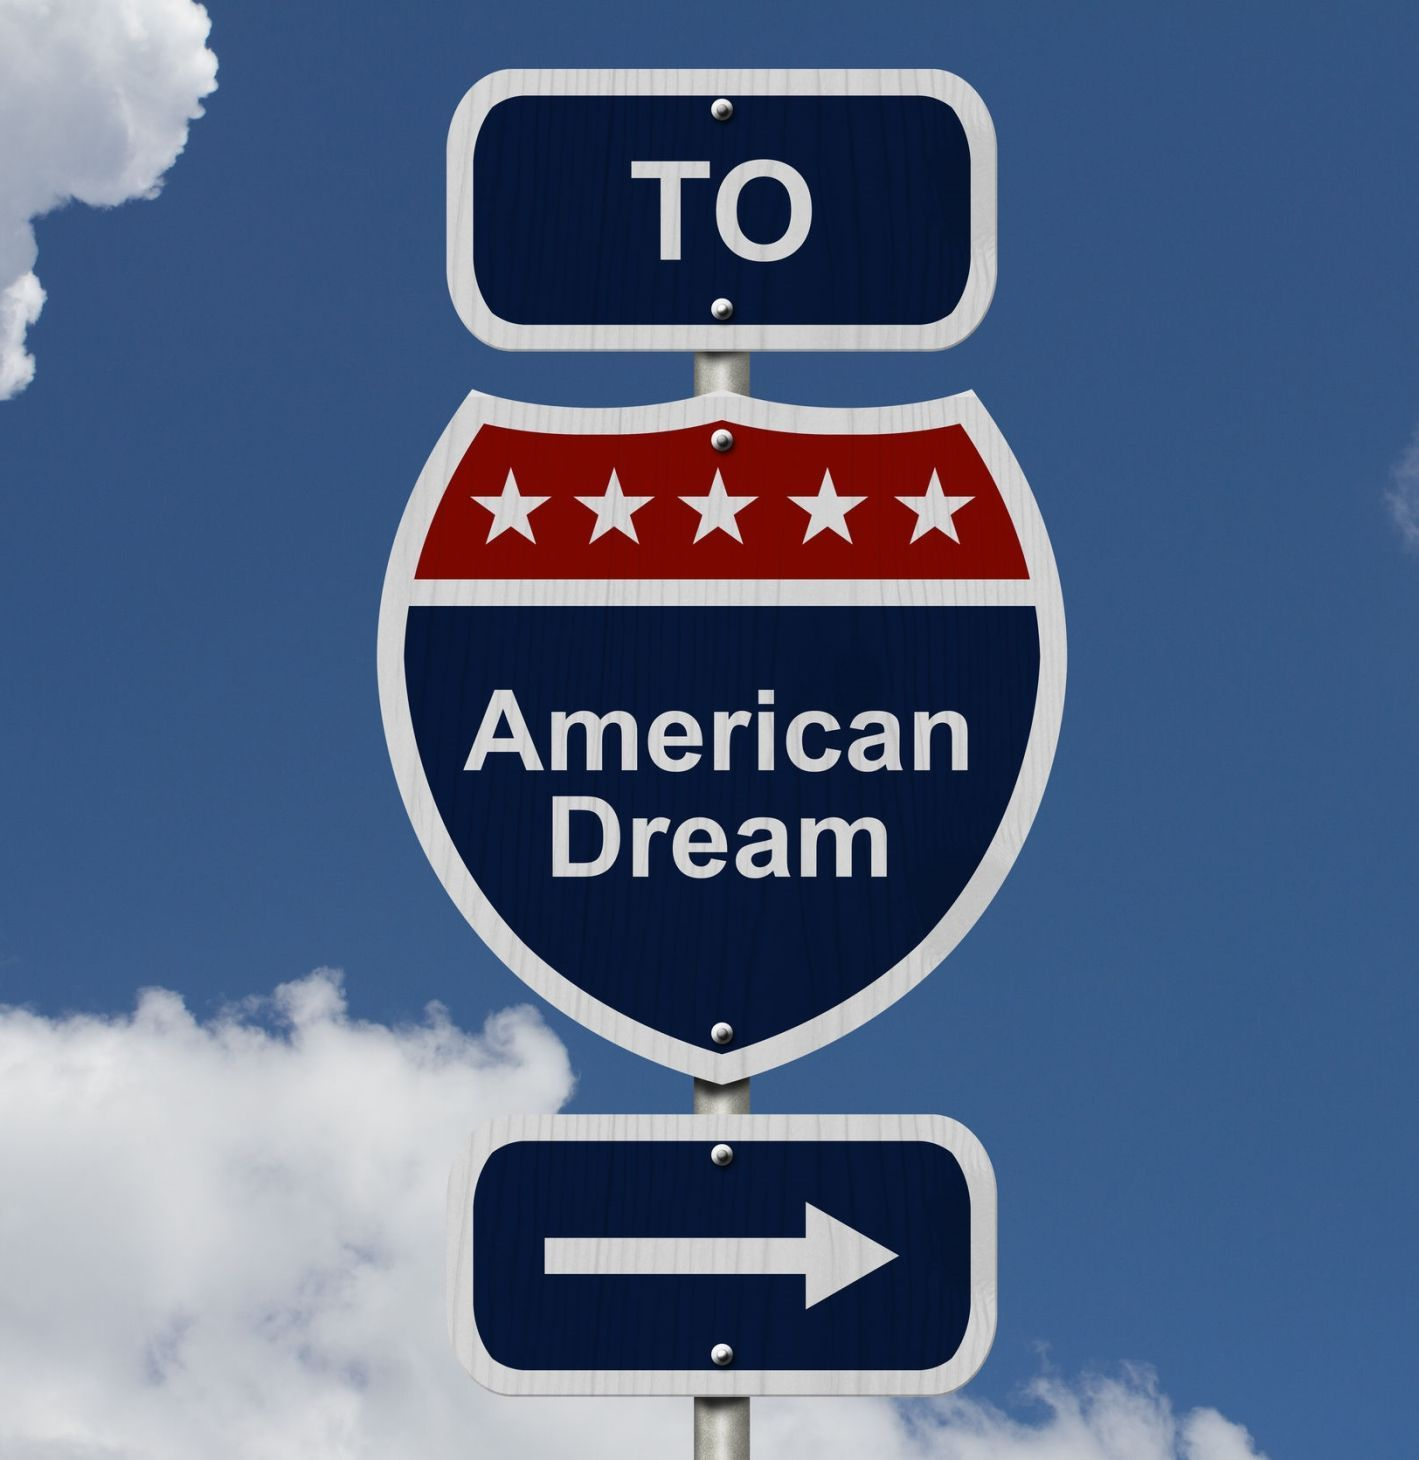 HBA Homeownership remains a key part of the American Dream